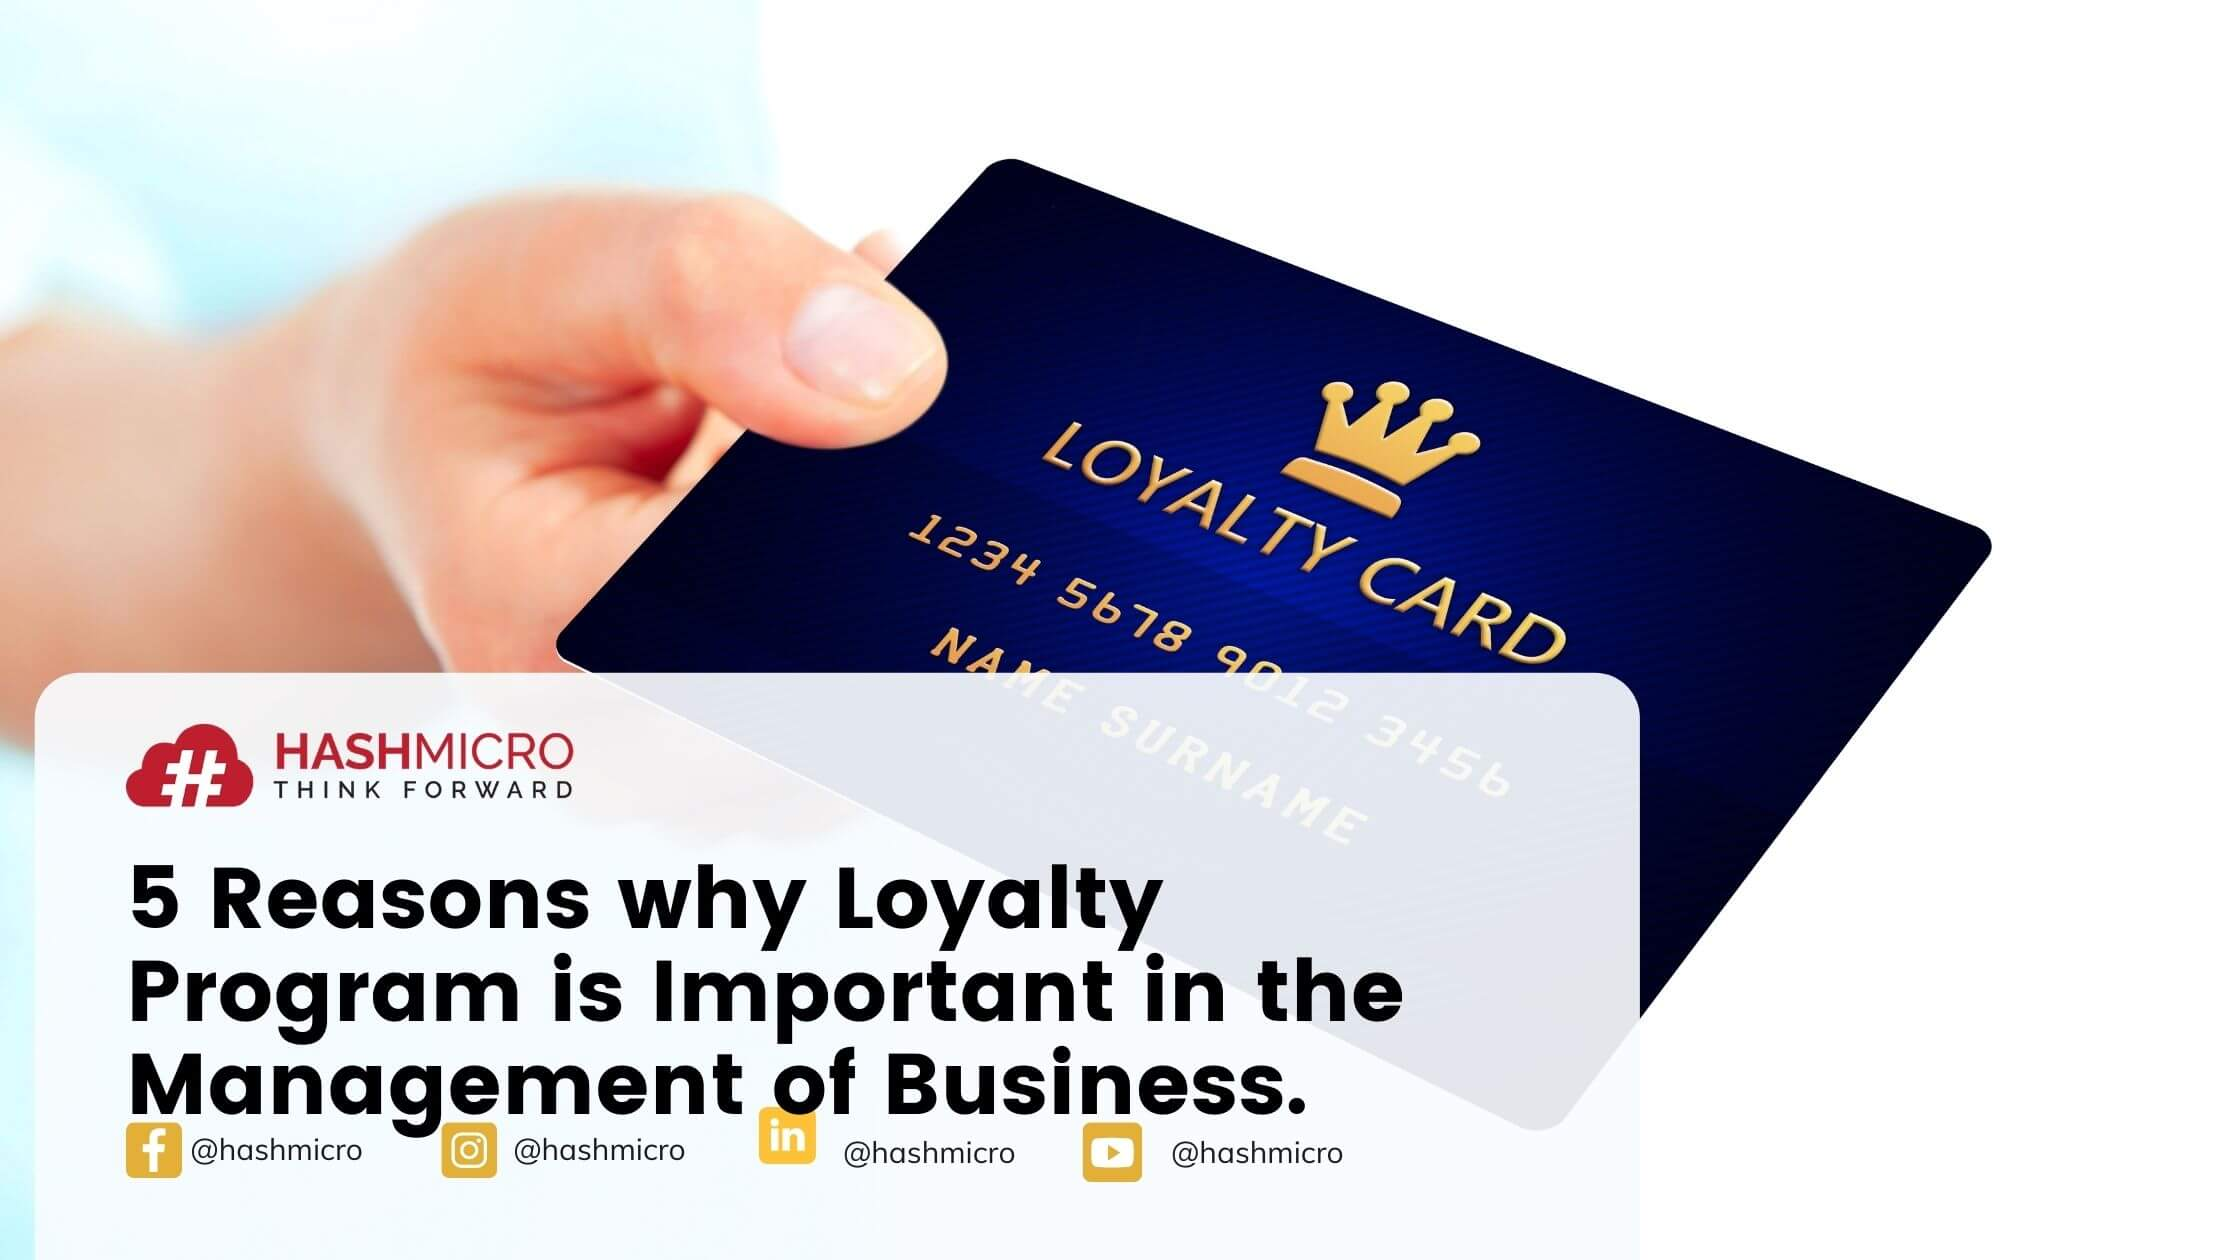 5 Reasons why Loyalty Program is Important in the Management of Business.